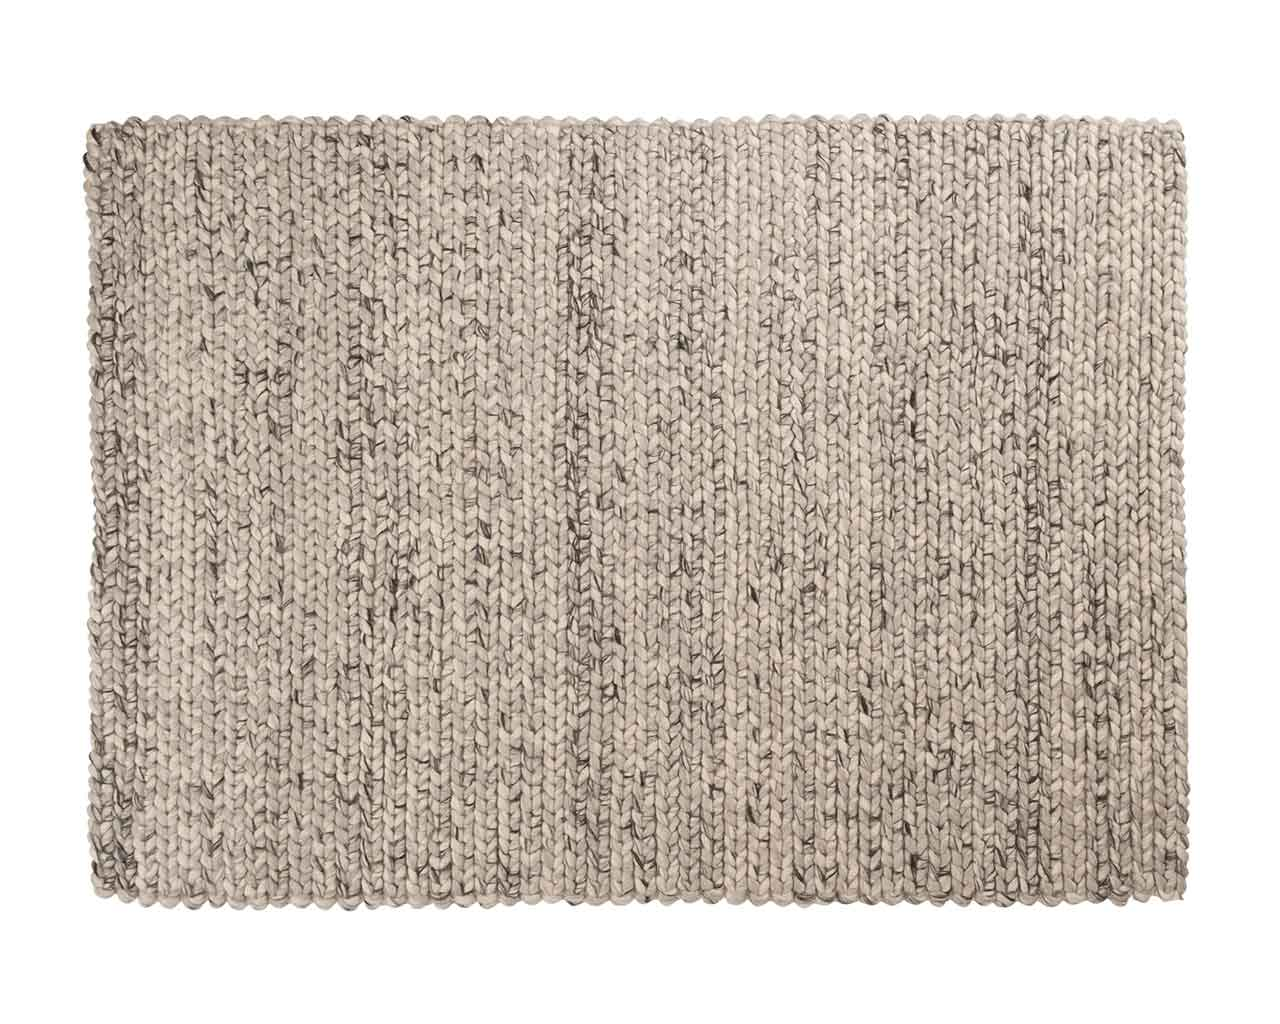 woolen ivory grey floor carpets 1